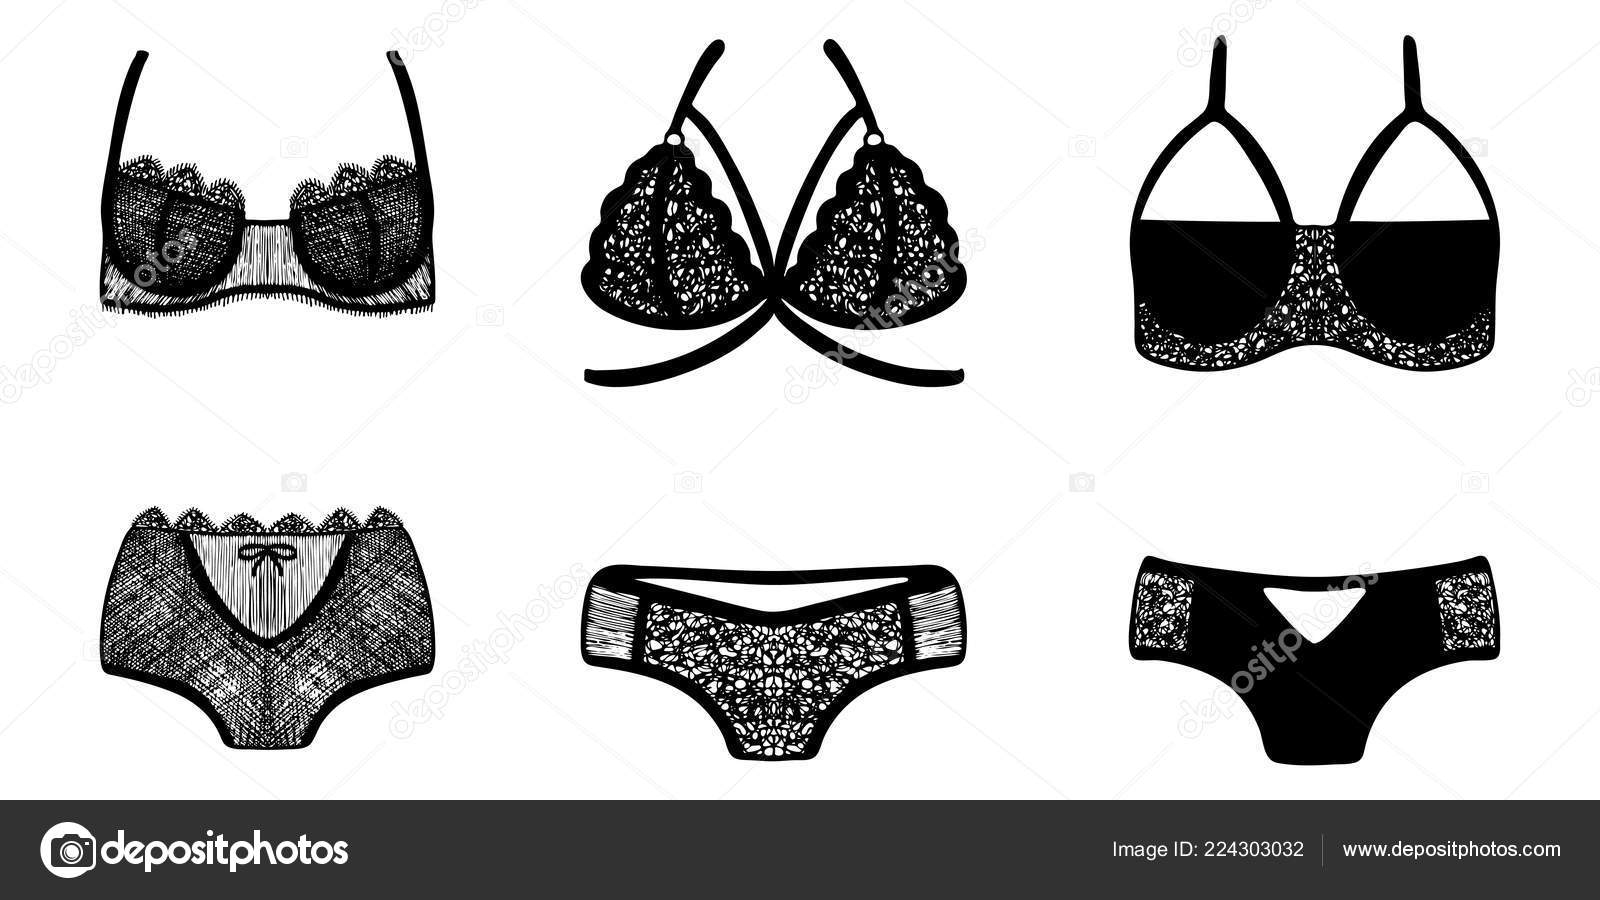 bf73b81ba48e Lace hand-drawn ink on women's underwear. Set of 3 sexy lingerie sets. —  Vector by tata.91.mail.ru